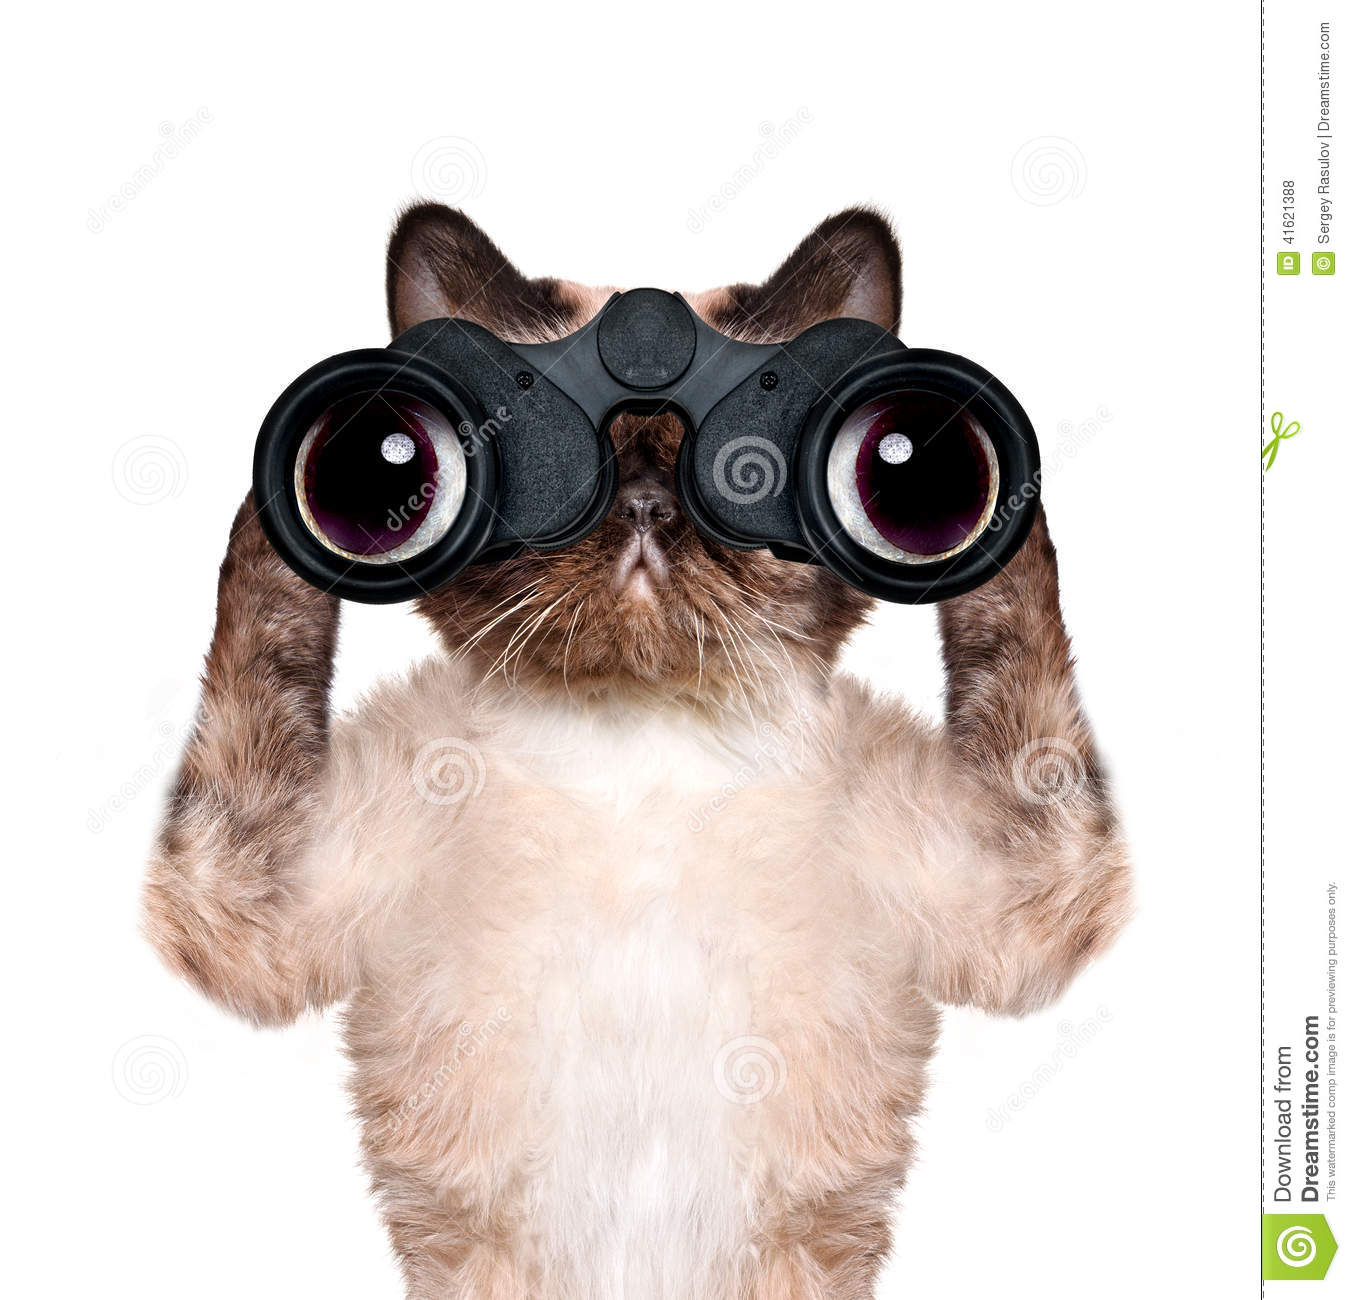 binoculars cat searching  looking and observing with care beach chair clip art templates beach chair clipart overlay